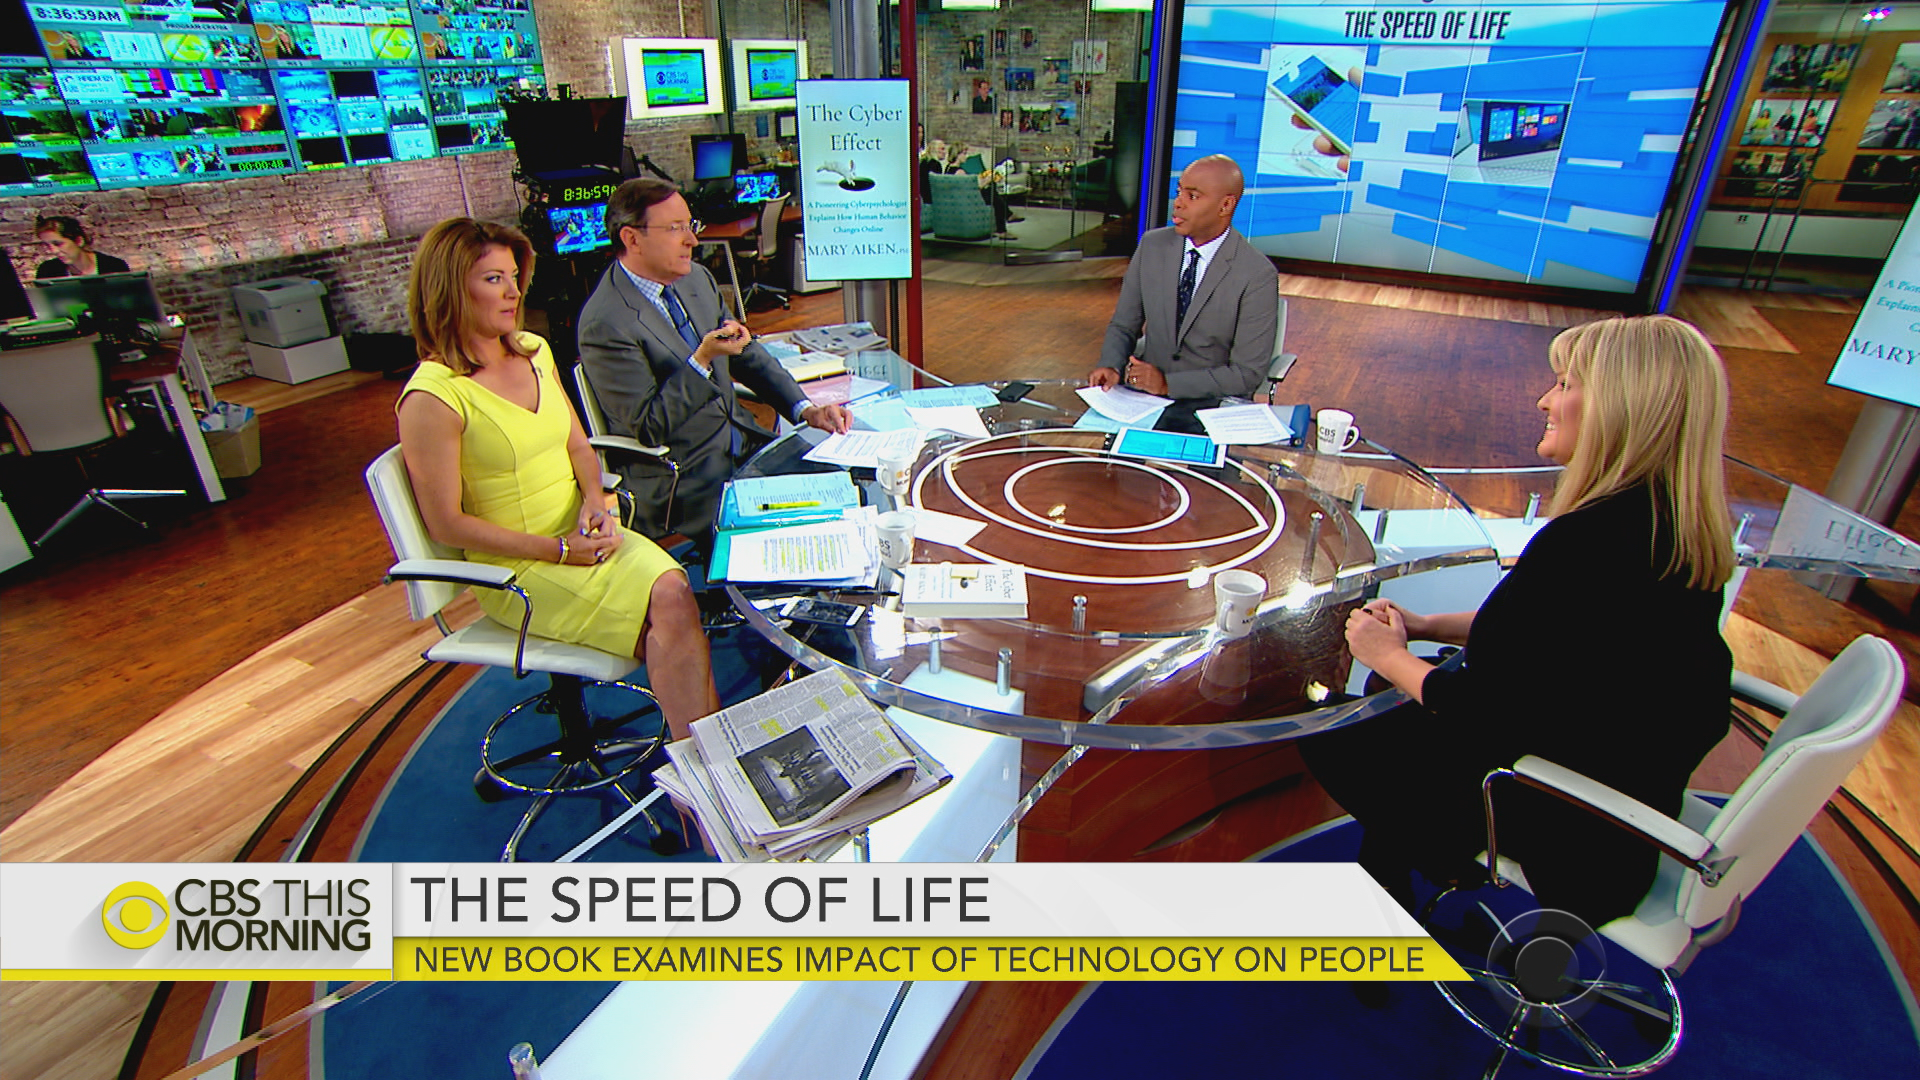 CBS THIS MORNING: Launch of the Cyber Effect